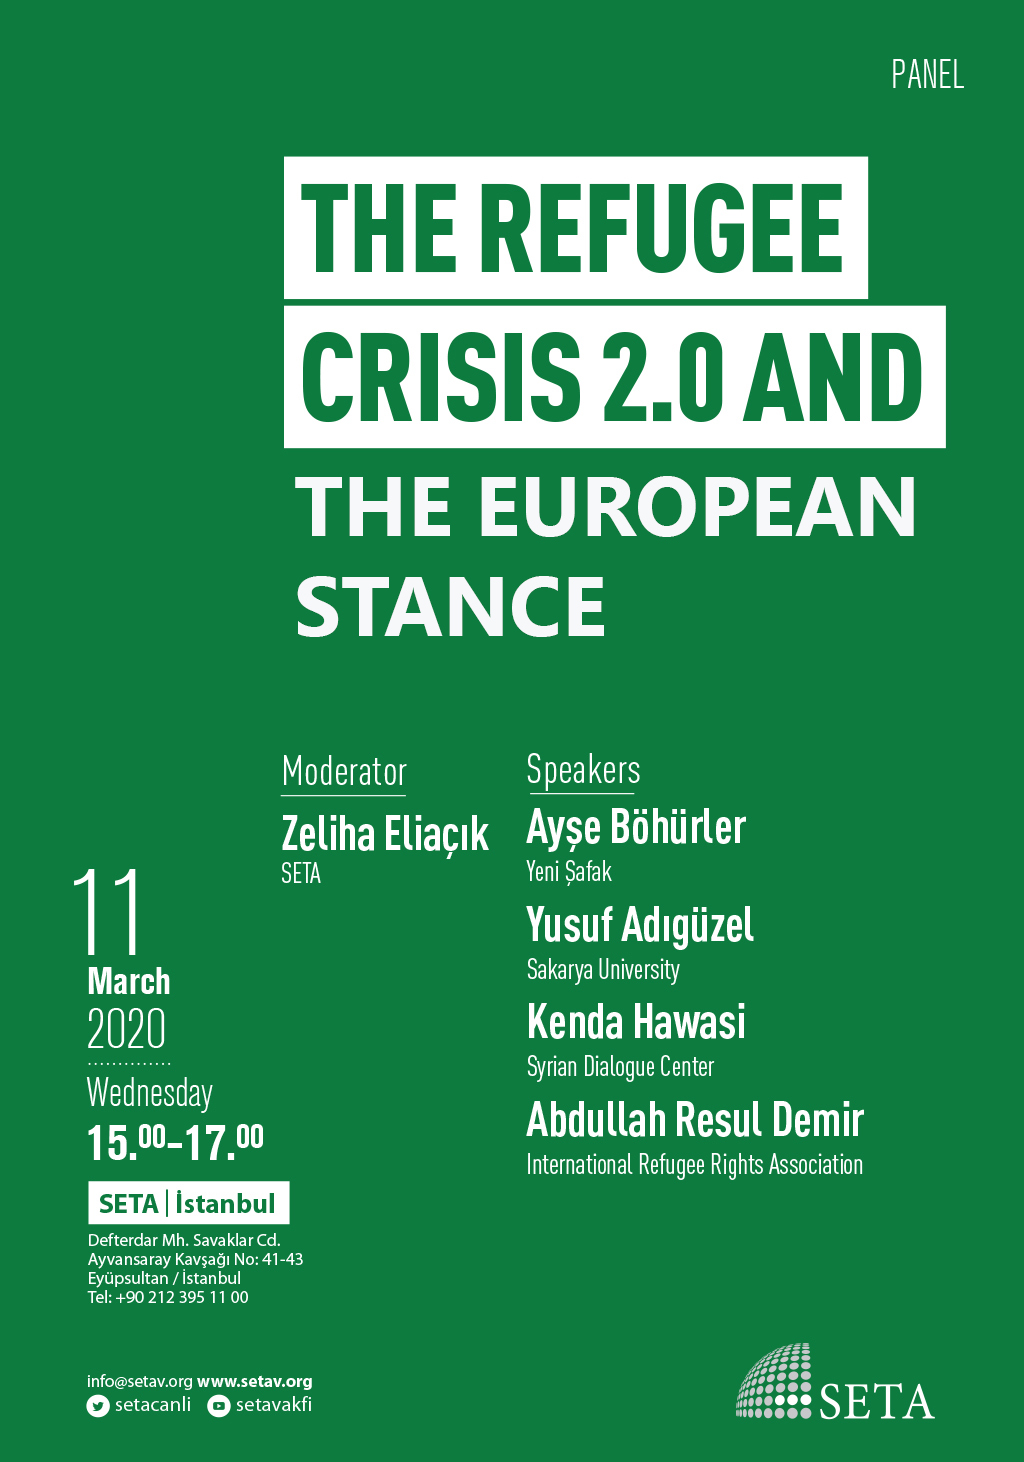 Panel: The Refugee Crisis 2.0 and the European Stance